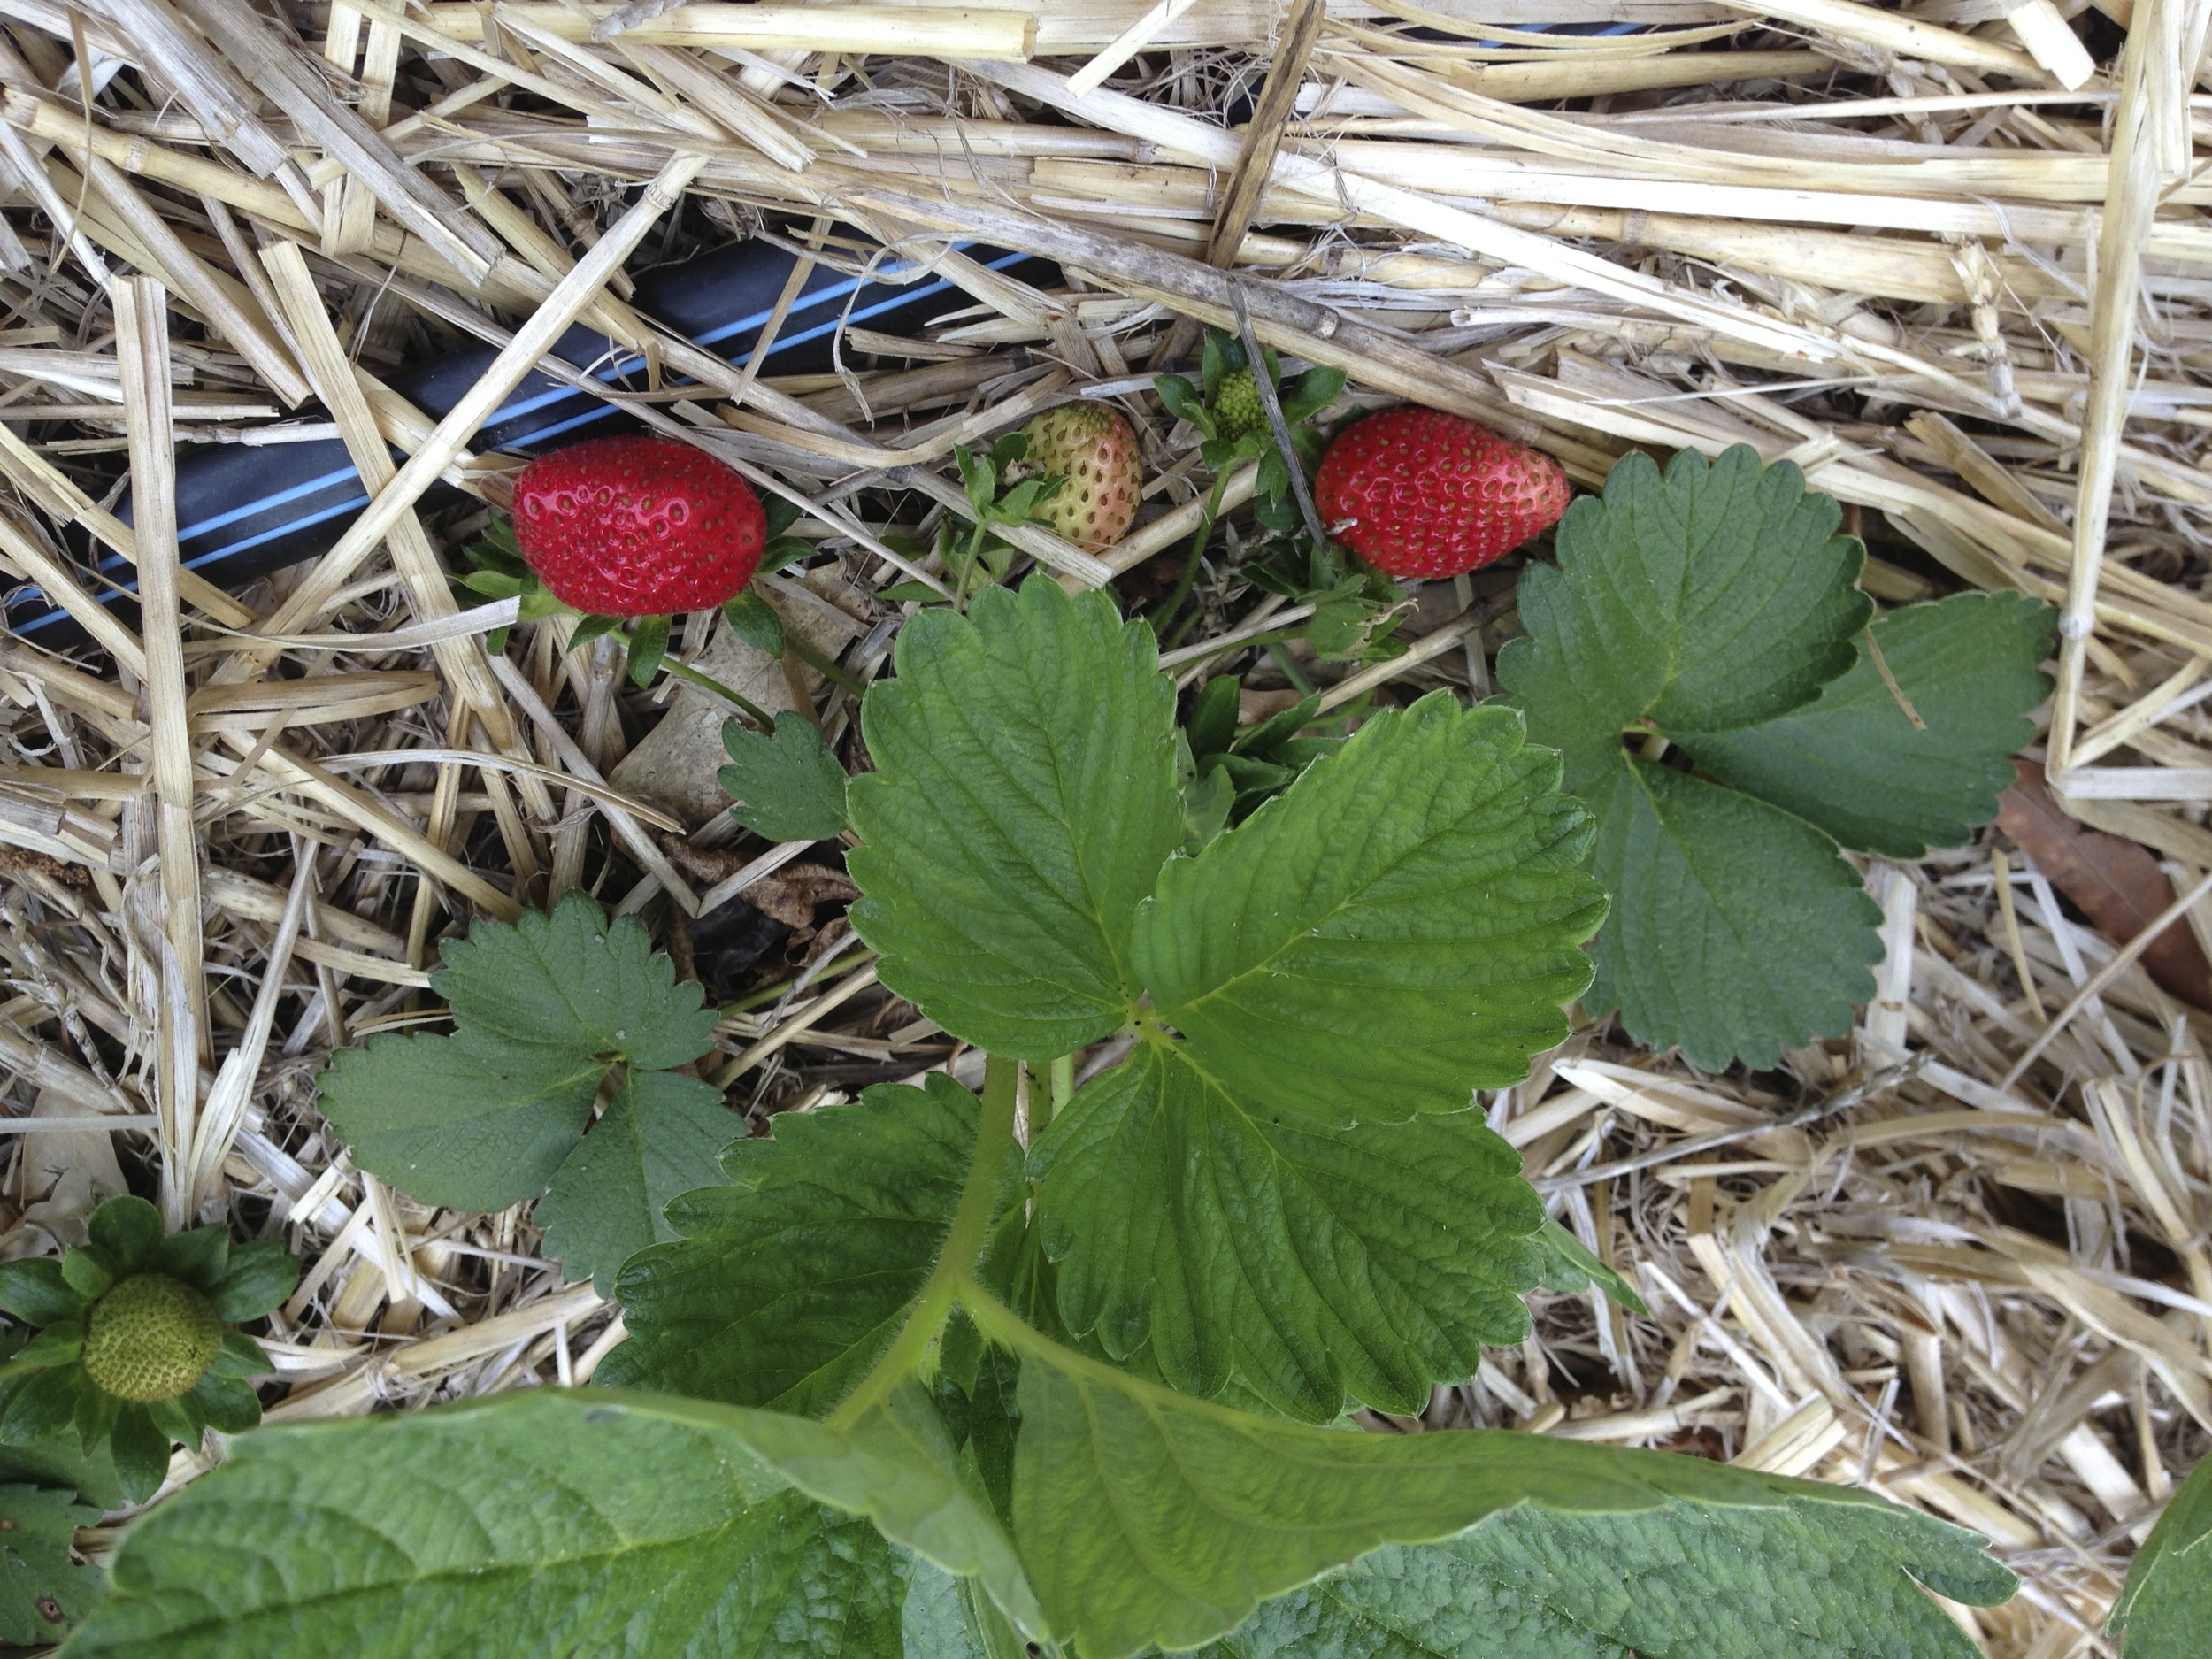 Oh boy! Here come the strawberries.